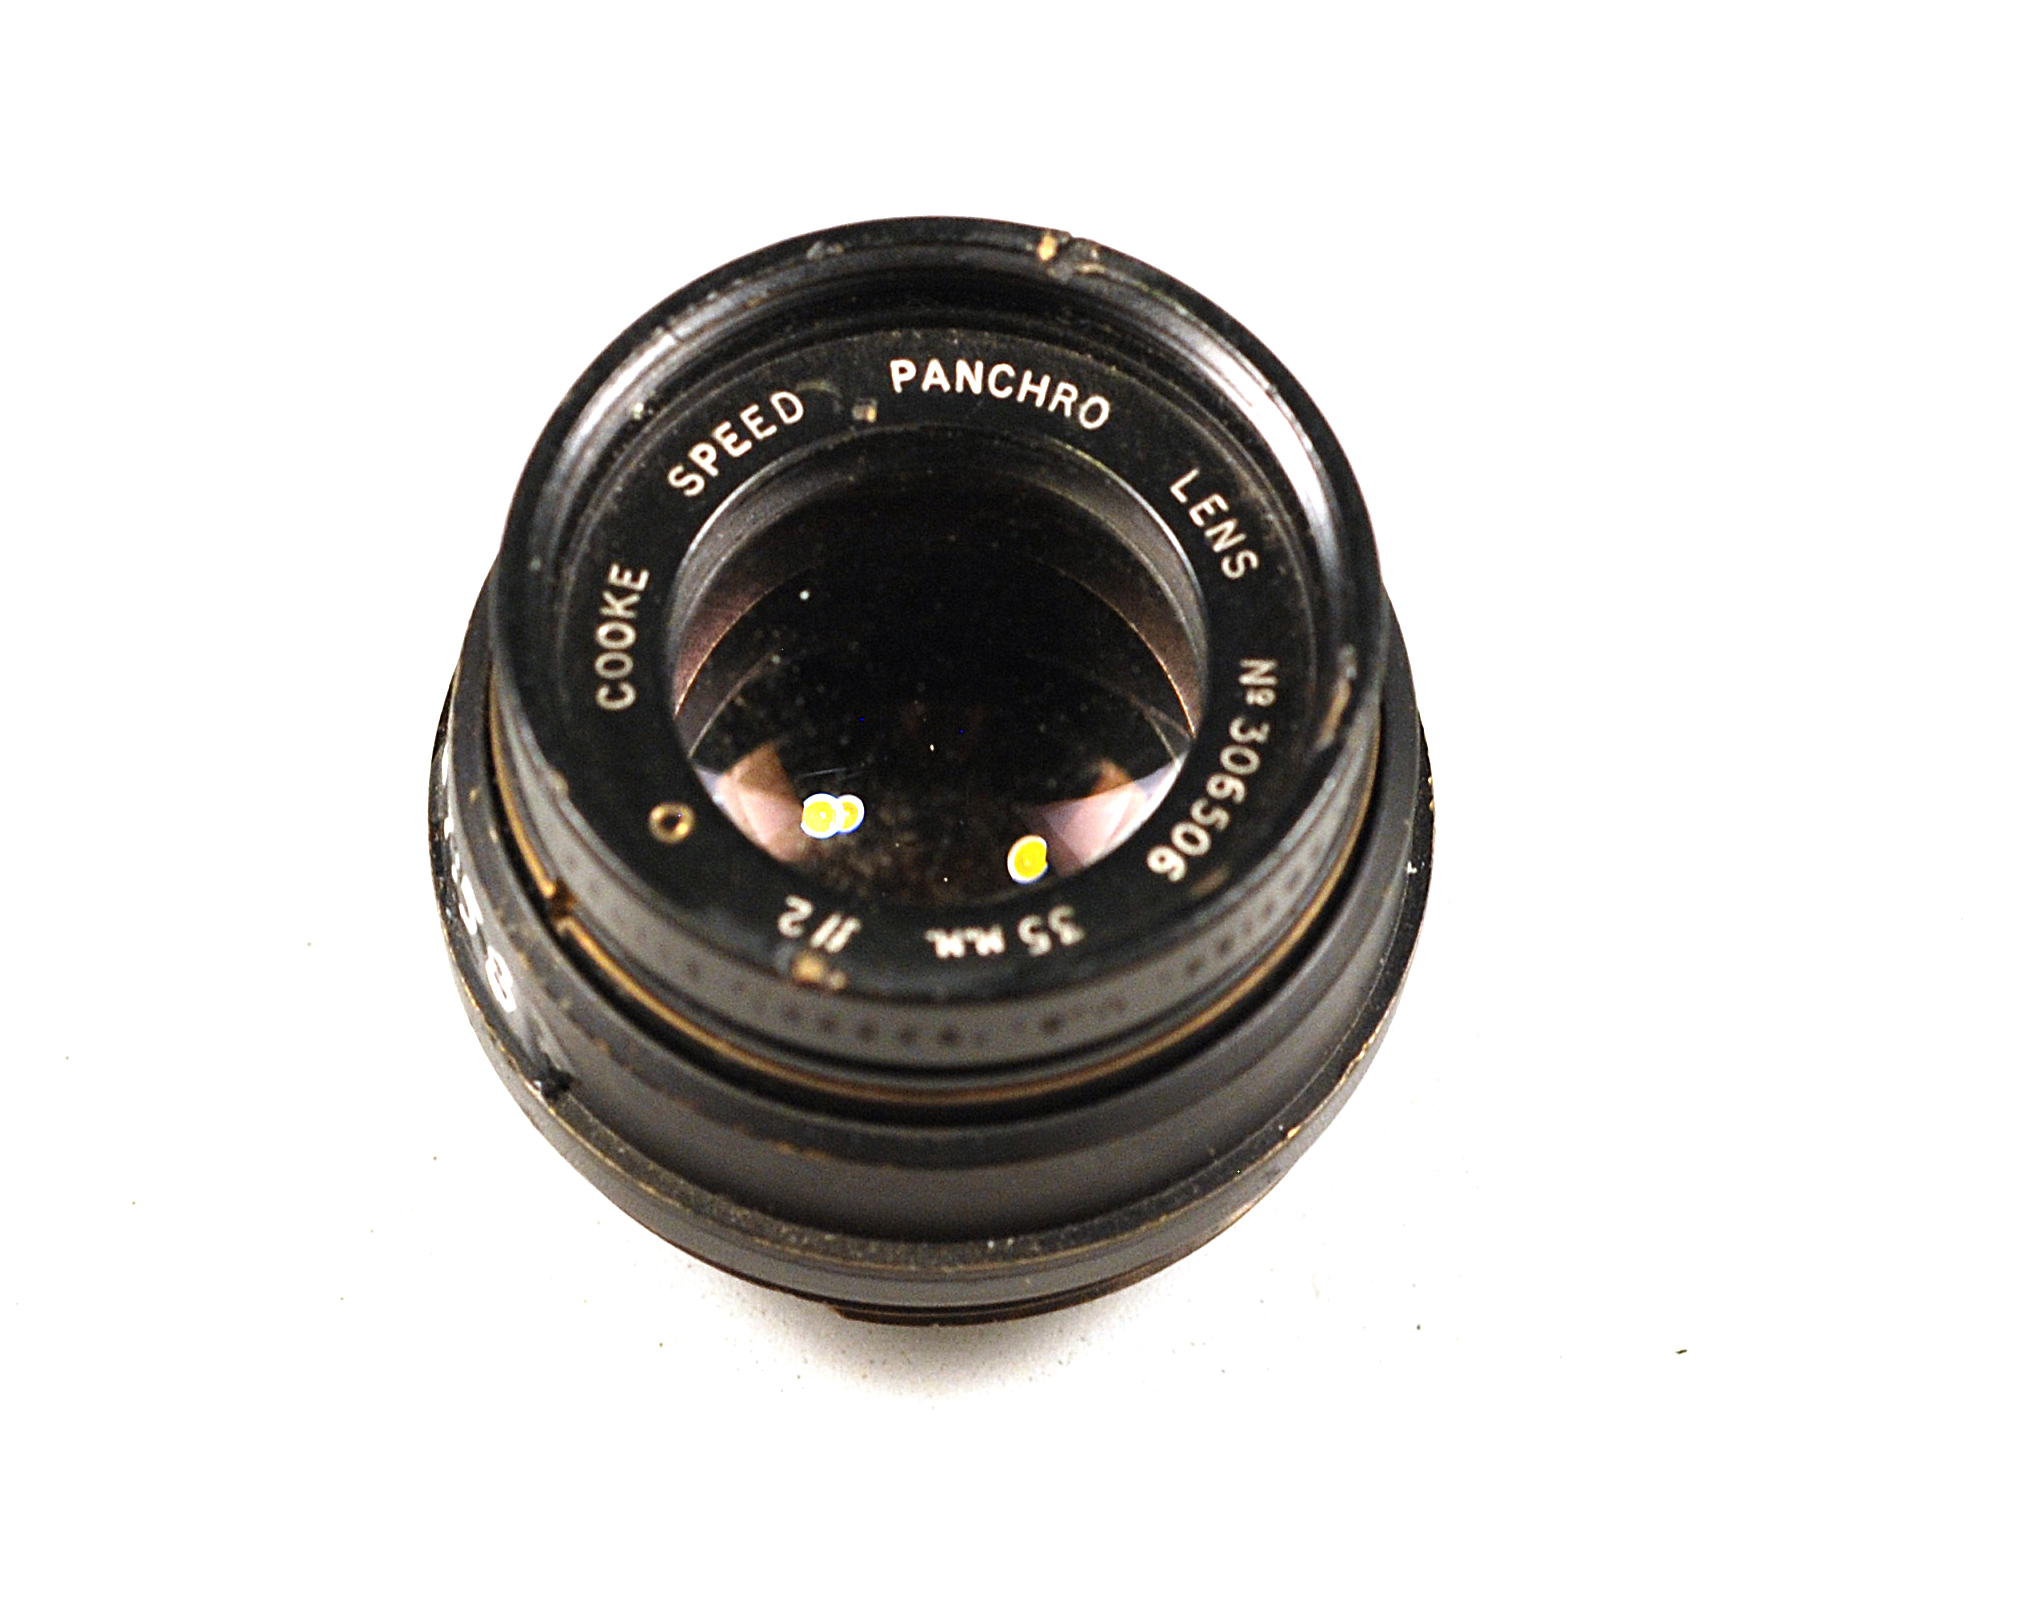 Shotonwhat Cooke Speed Panchro Lenses Page 2